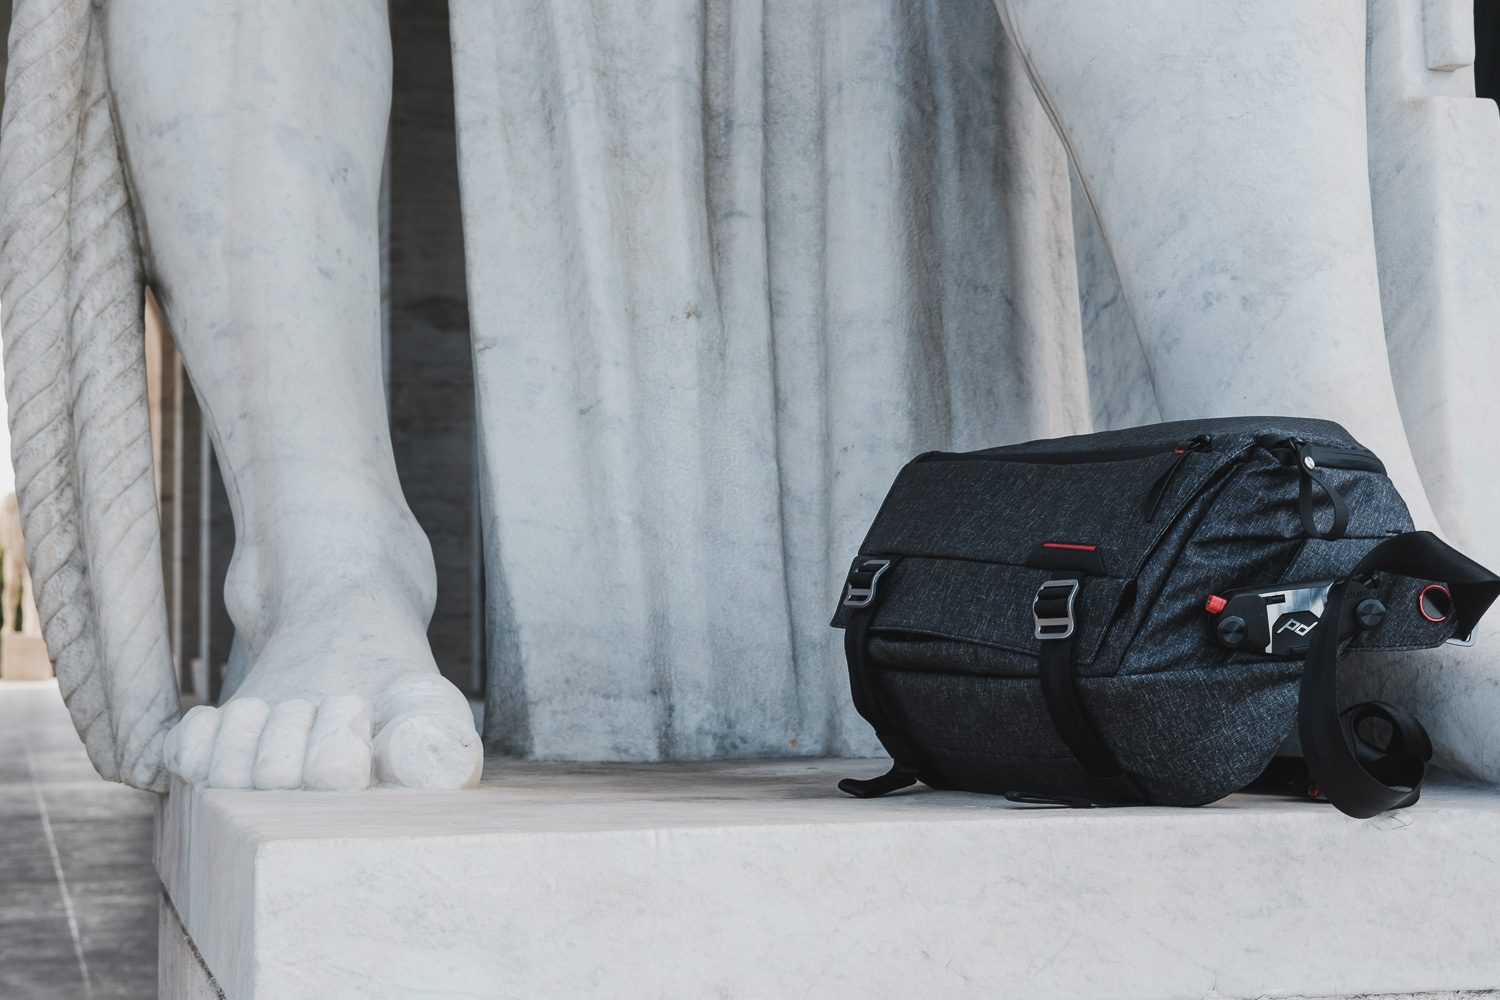 The new Peak Design Sling, with the Capture Pro Clip attached to it.